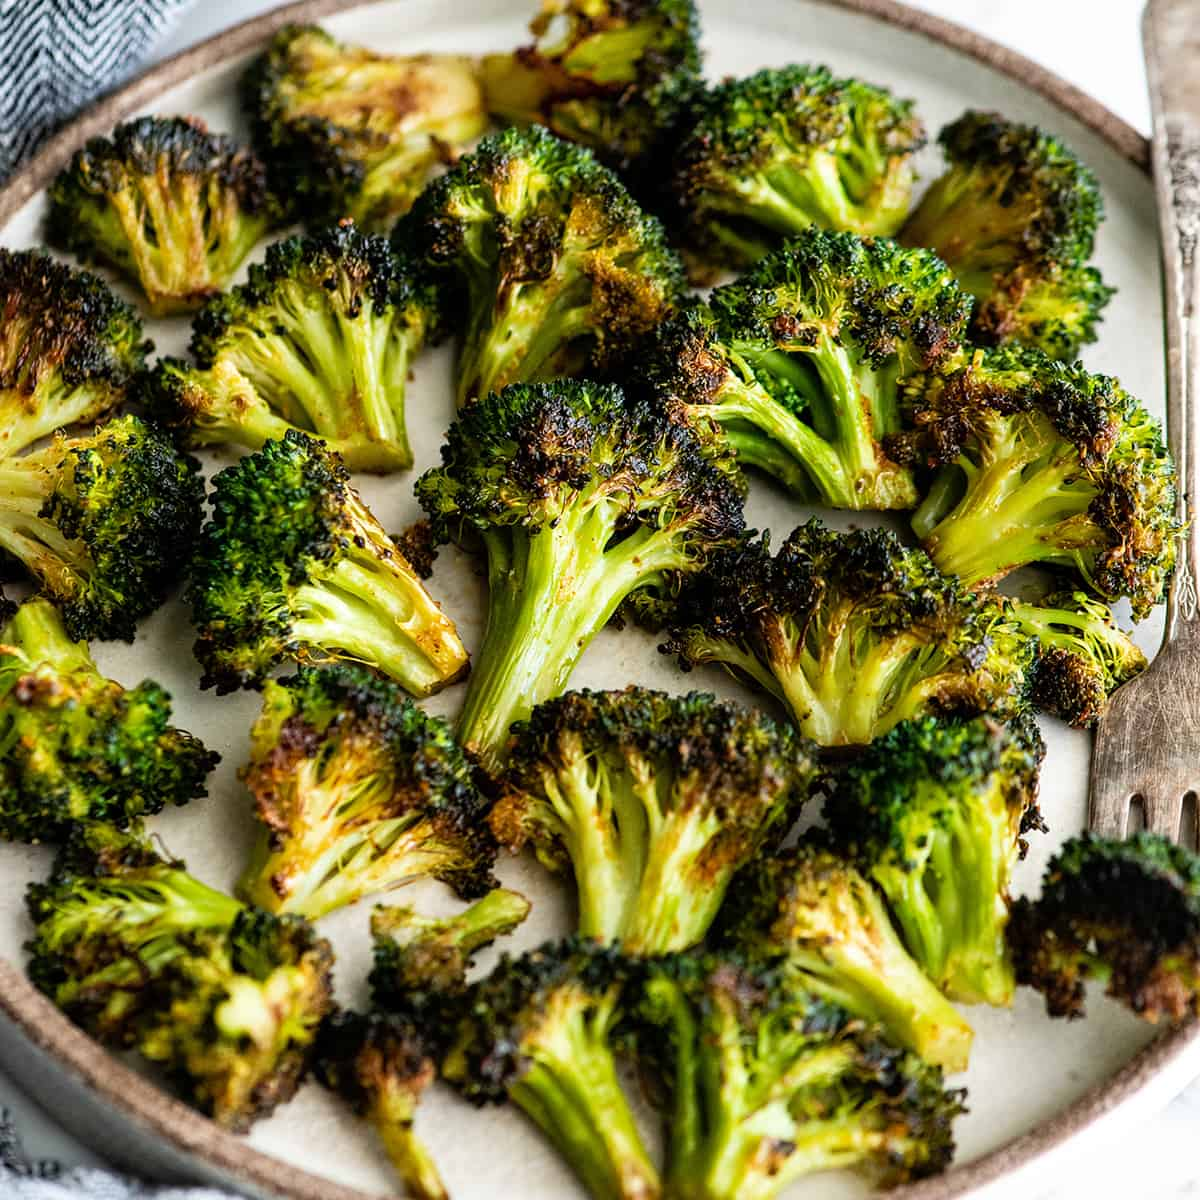 overhead view of oven roasted broccoli on a plate